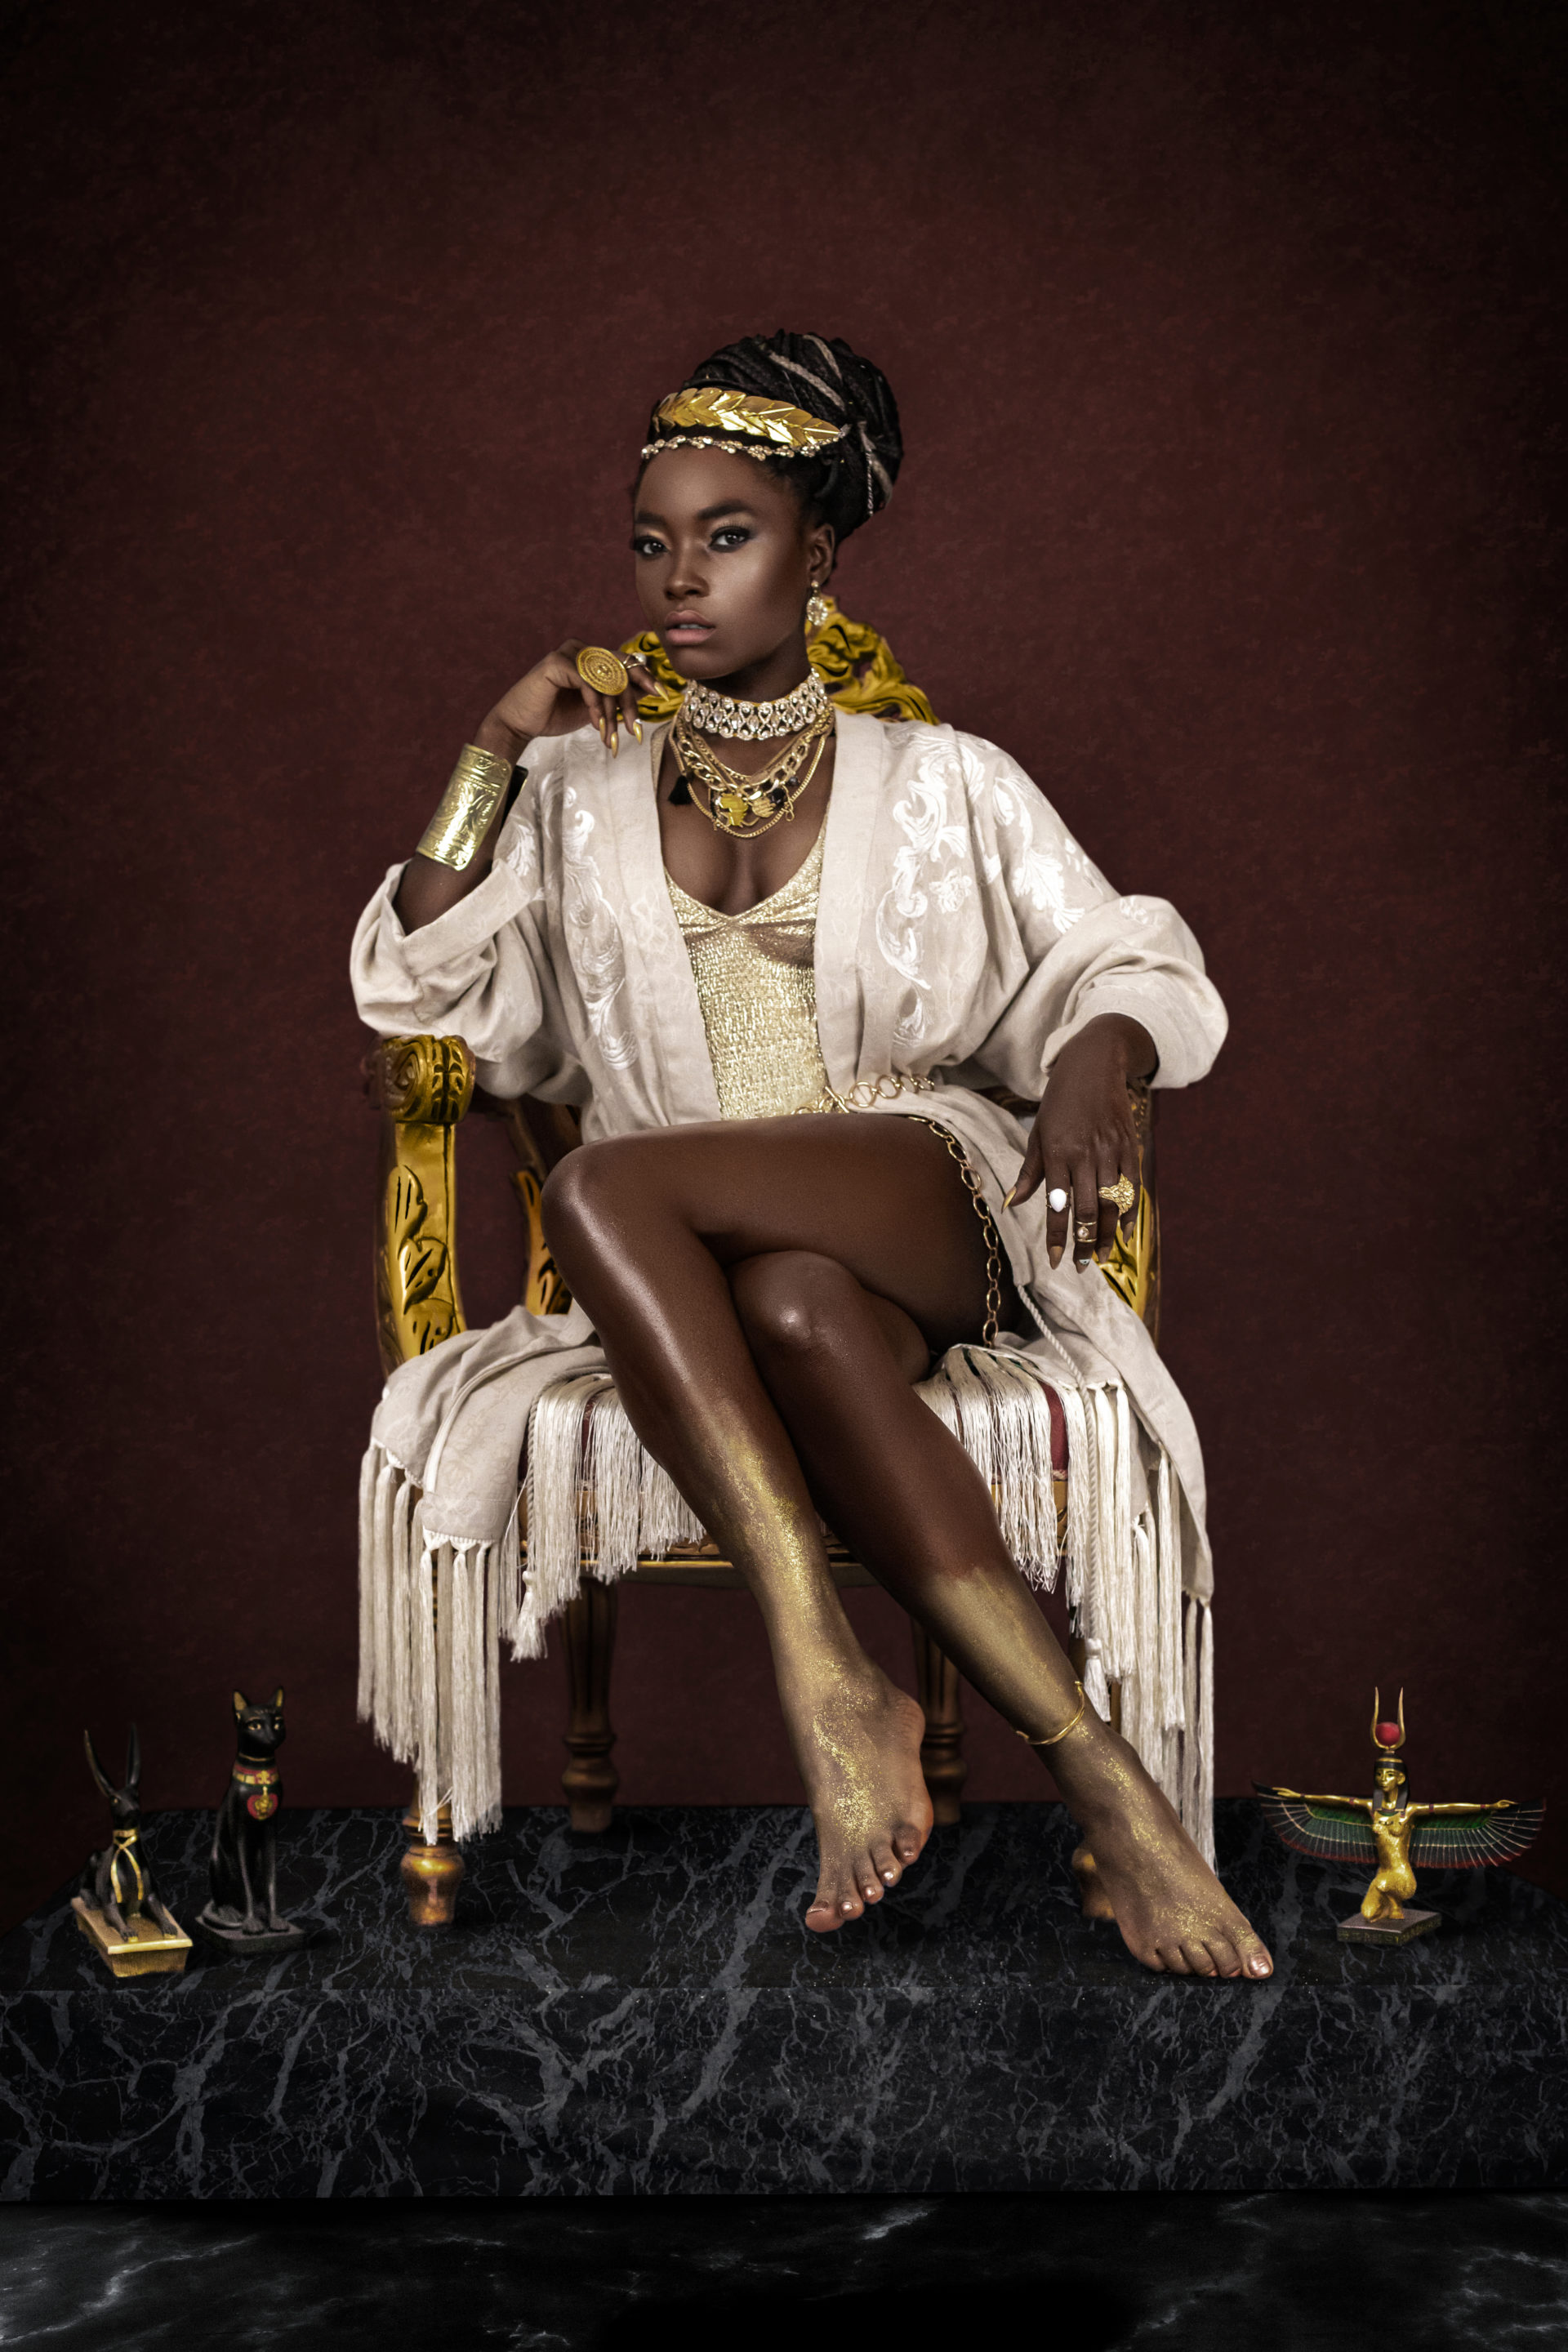 Female Egyptian Pharaoh Sitting On Gold Throne